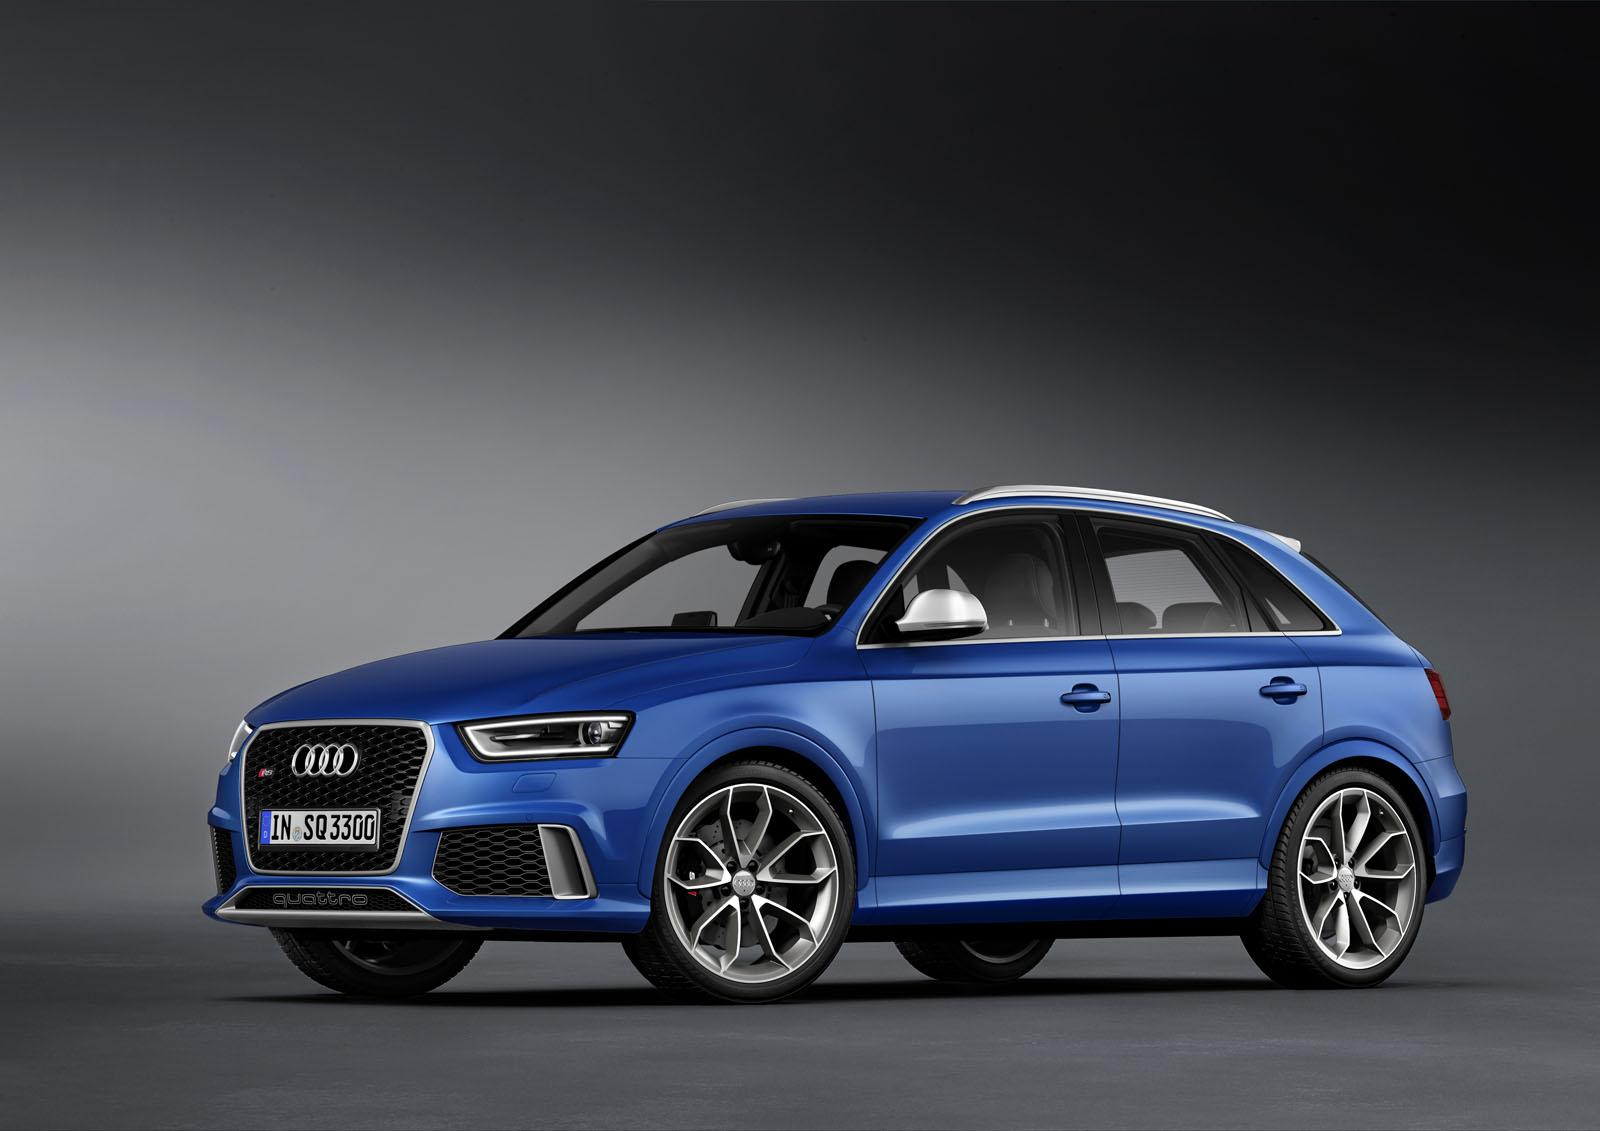 2014 audi rs q3 officially revealed autoevolution. Black Bedroom Furniture Sets. Home Design Ideas